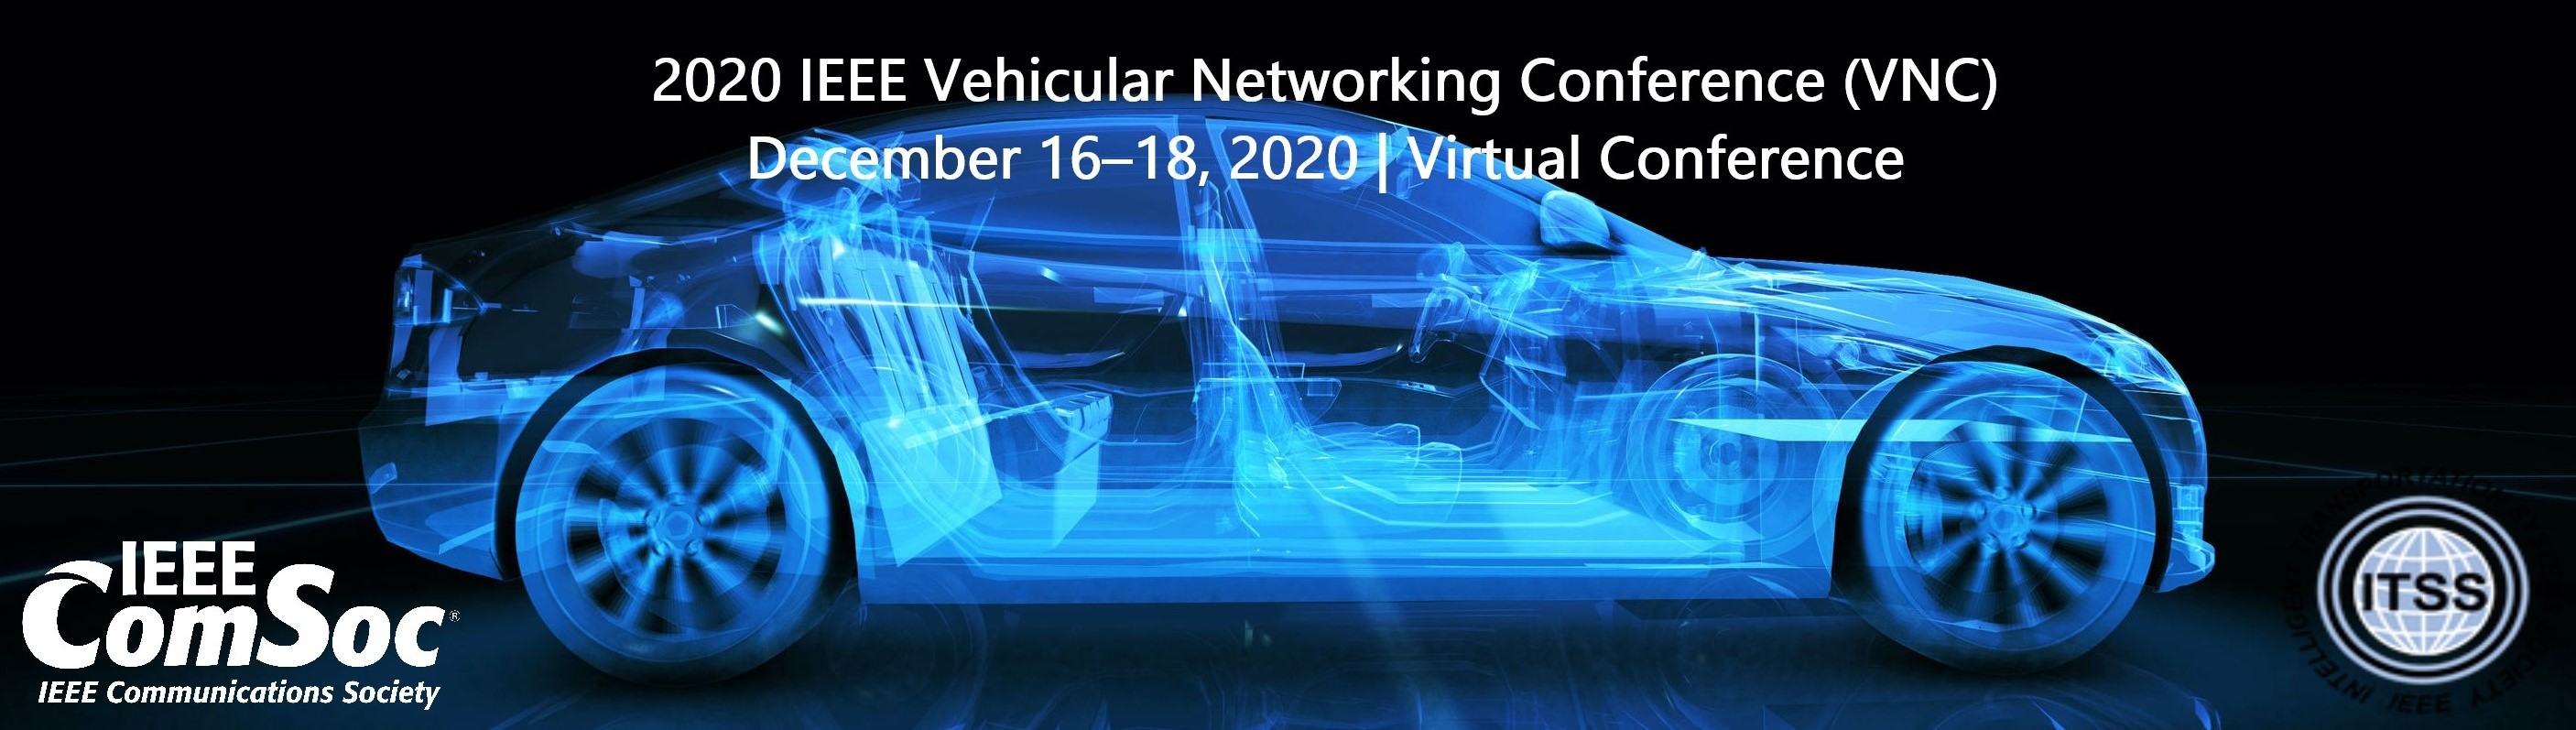 2020 IEEE Vehicular Networking Conference (VNC)